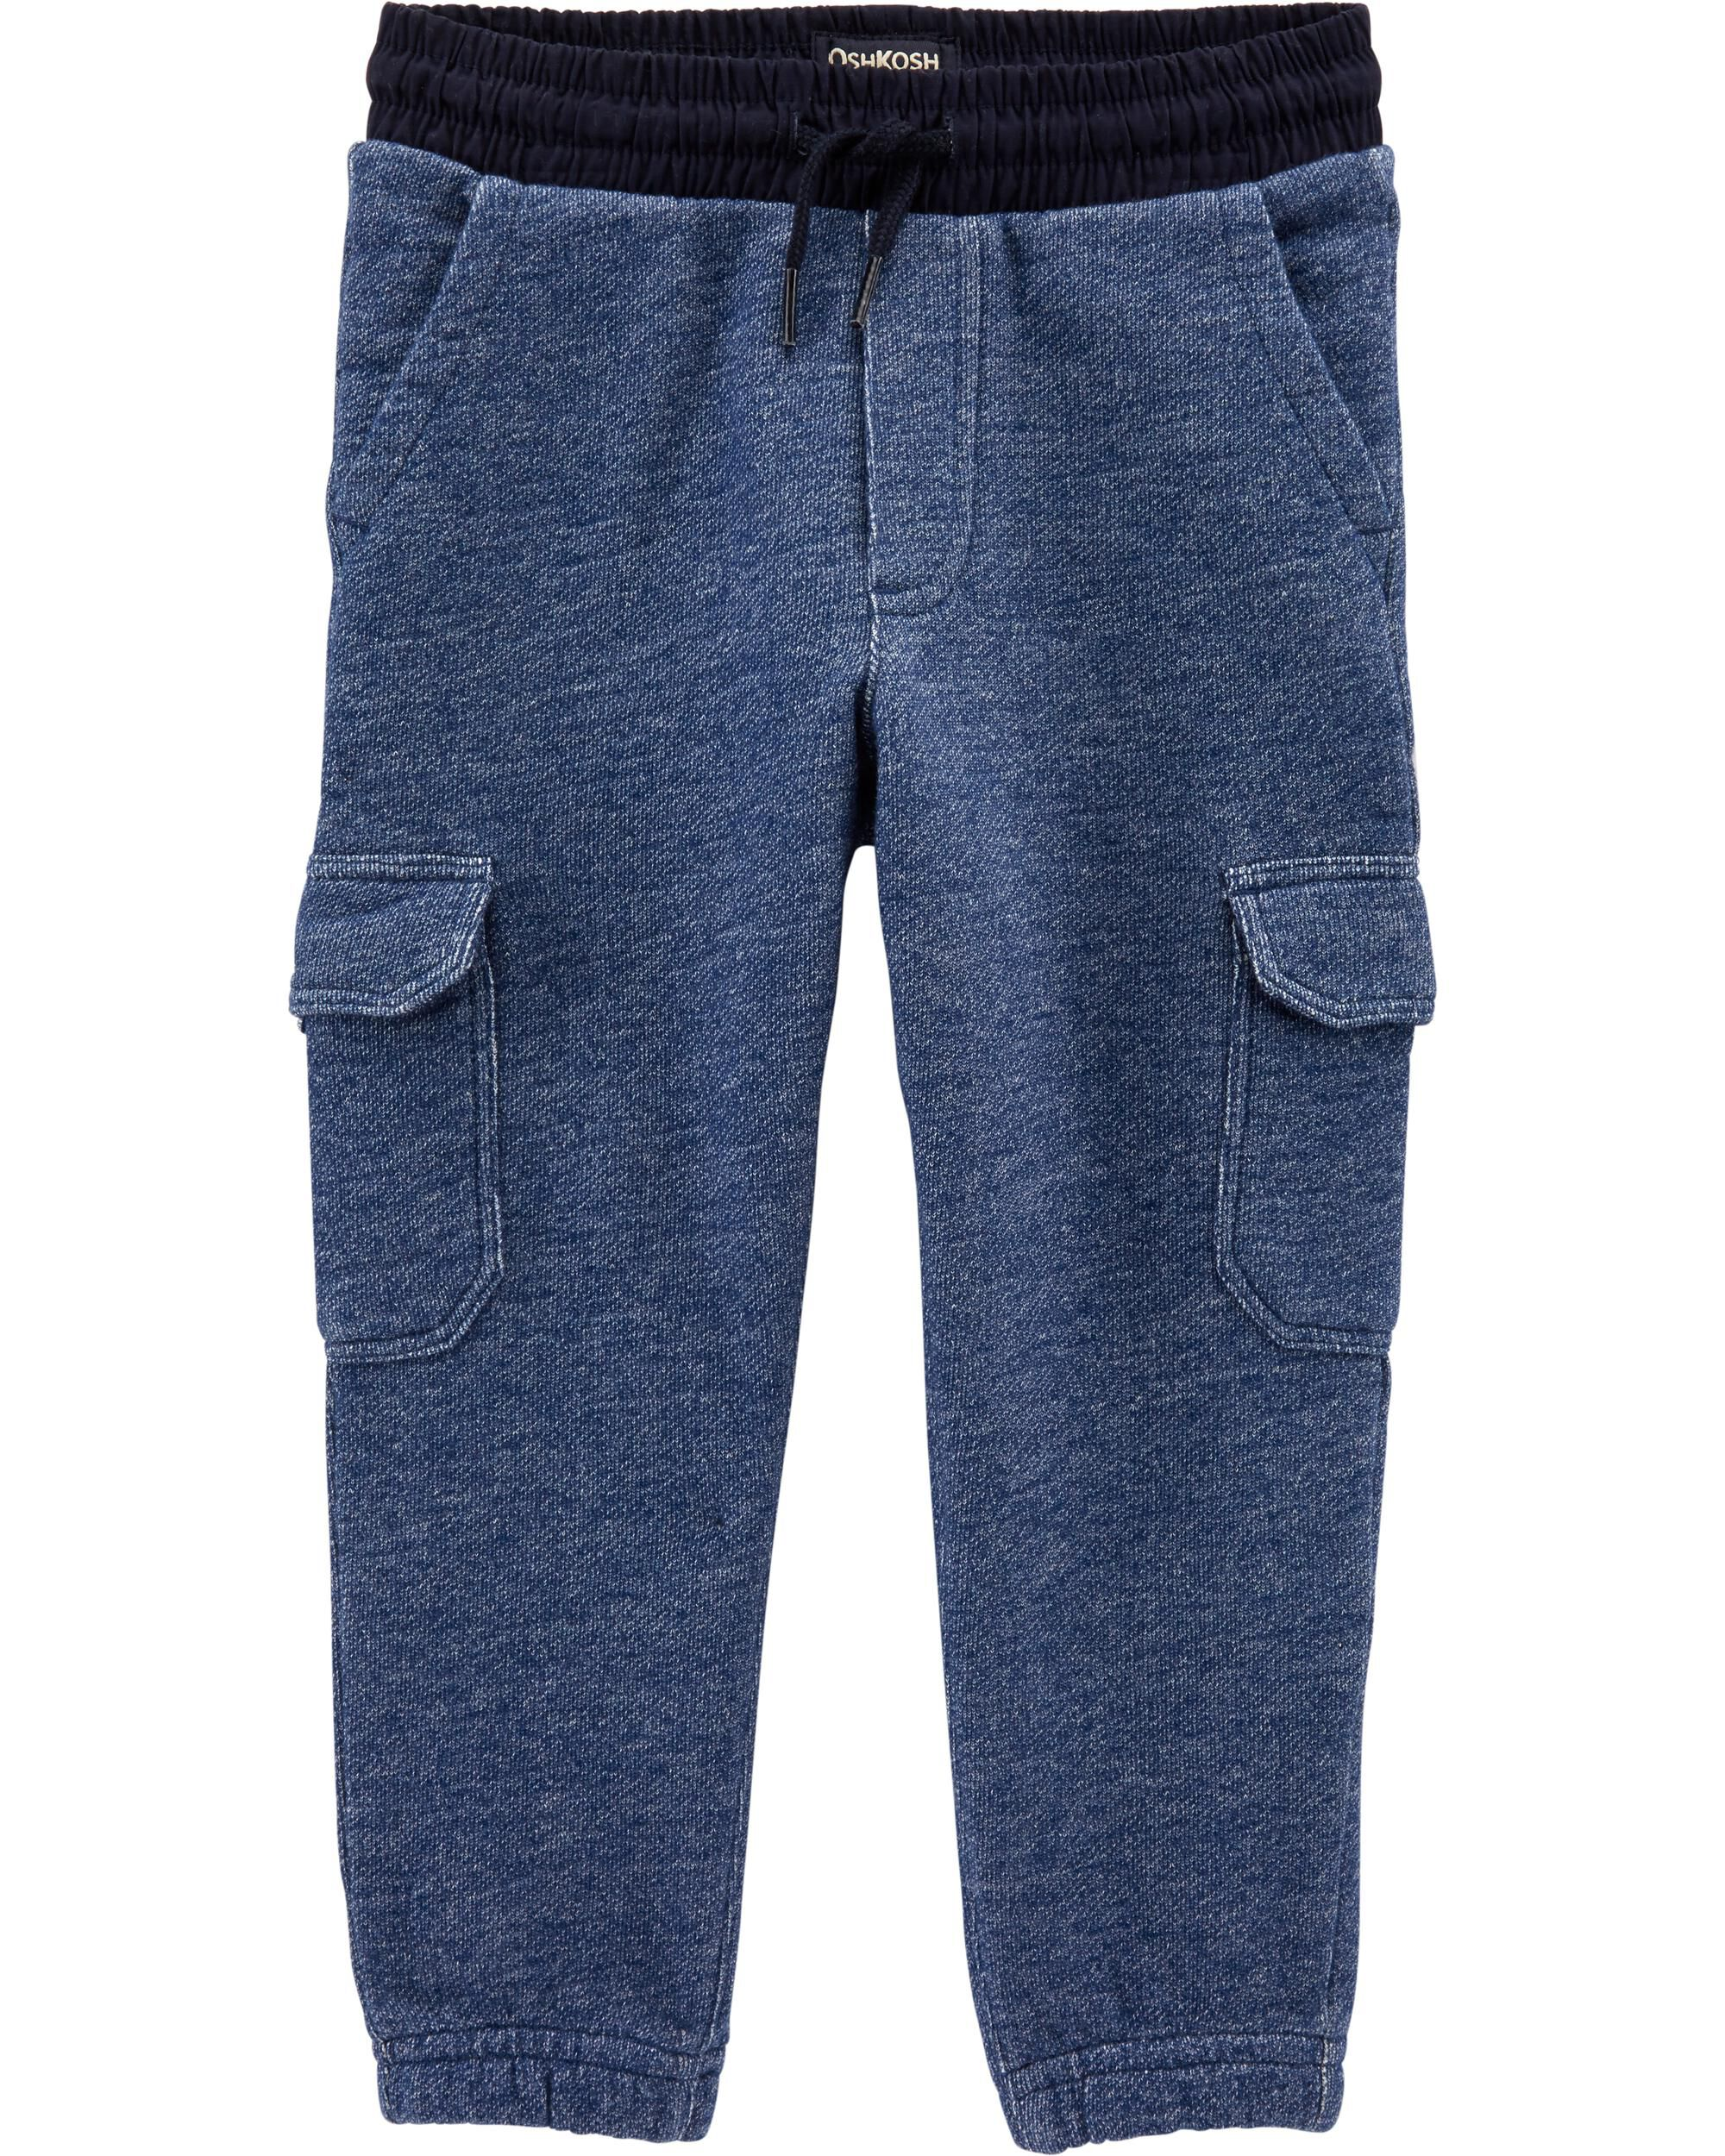 *CLEARANCE* Pull-On Cargo Joggers